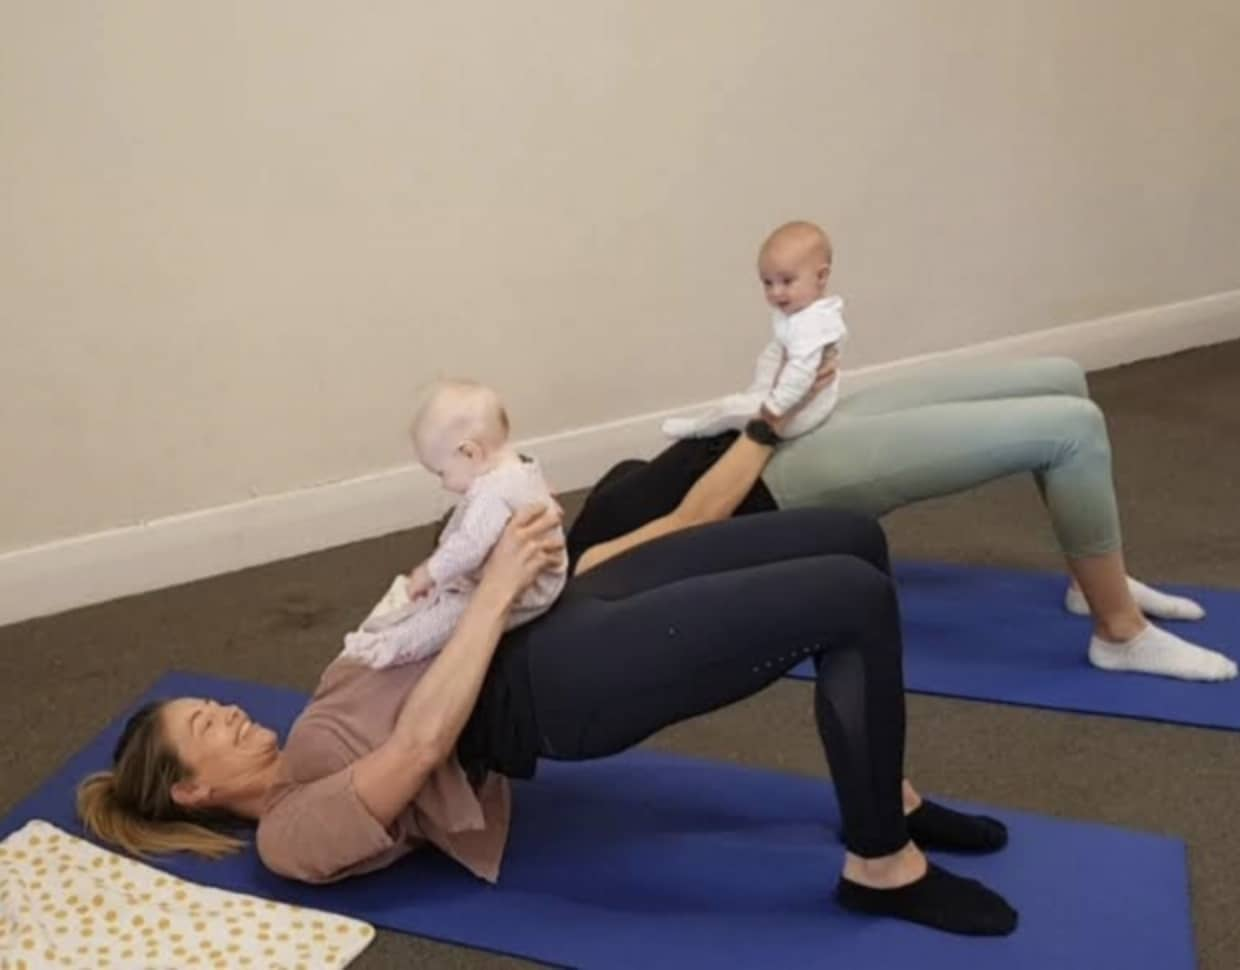 For all you mums out there who have been struggling to leave the house, we will be doing a gentle introductory core stability and stretching session that you can do with your babies in the comfort of your own home.  Join us on Monday 24th May at 1:30pm for a free Facebook live Mums and Bubs Pilates session.  Head to our Facebook page now to view the live event.